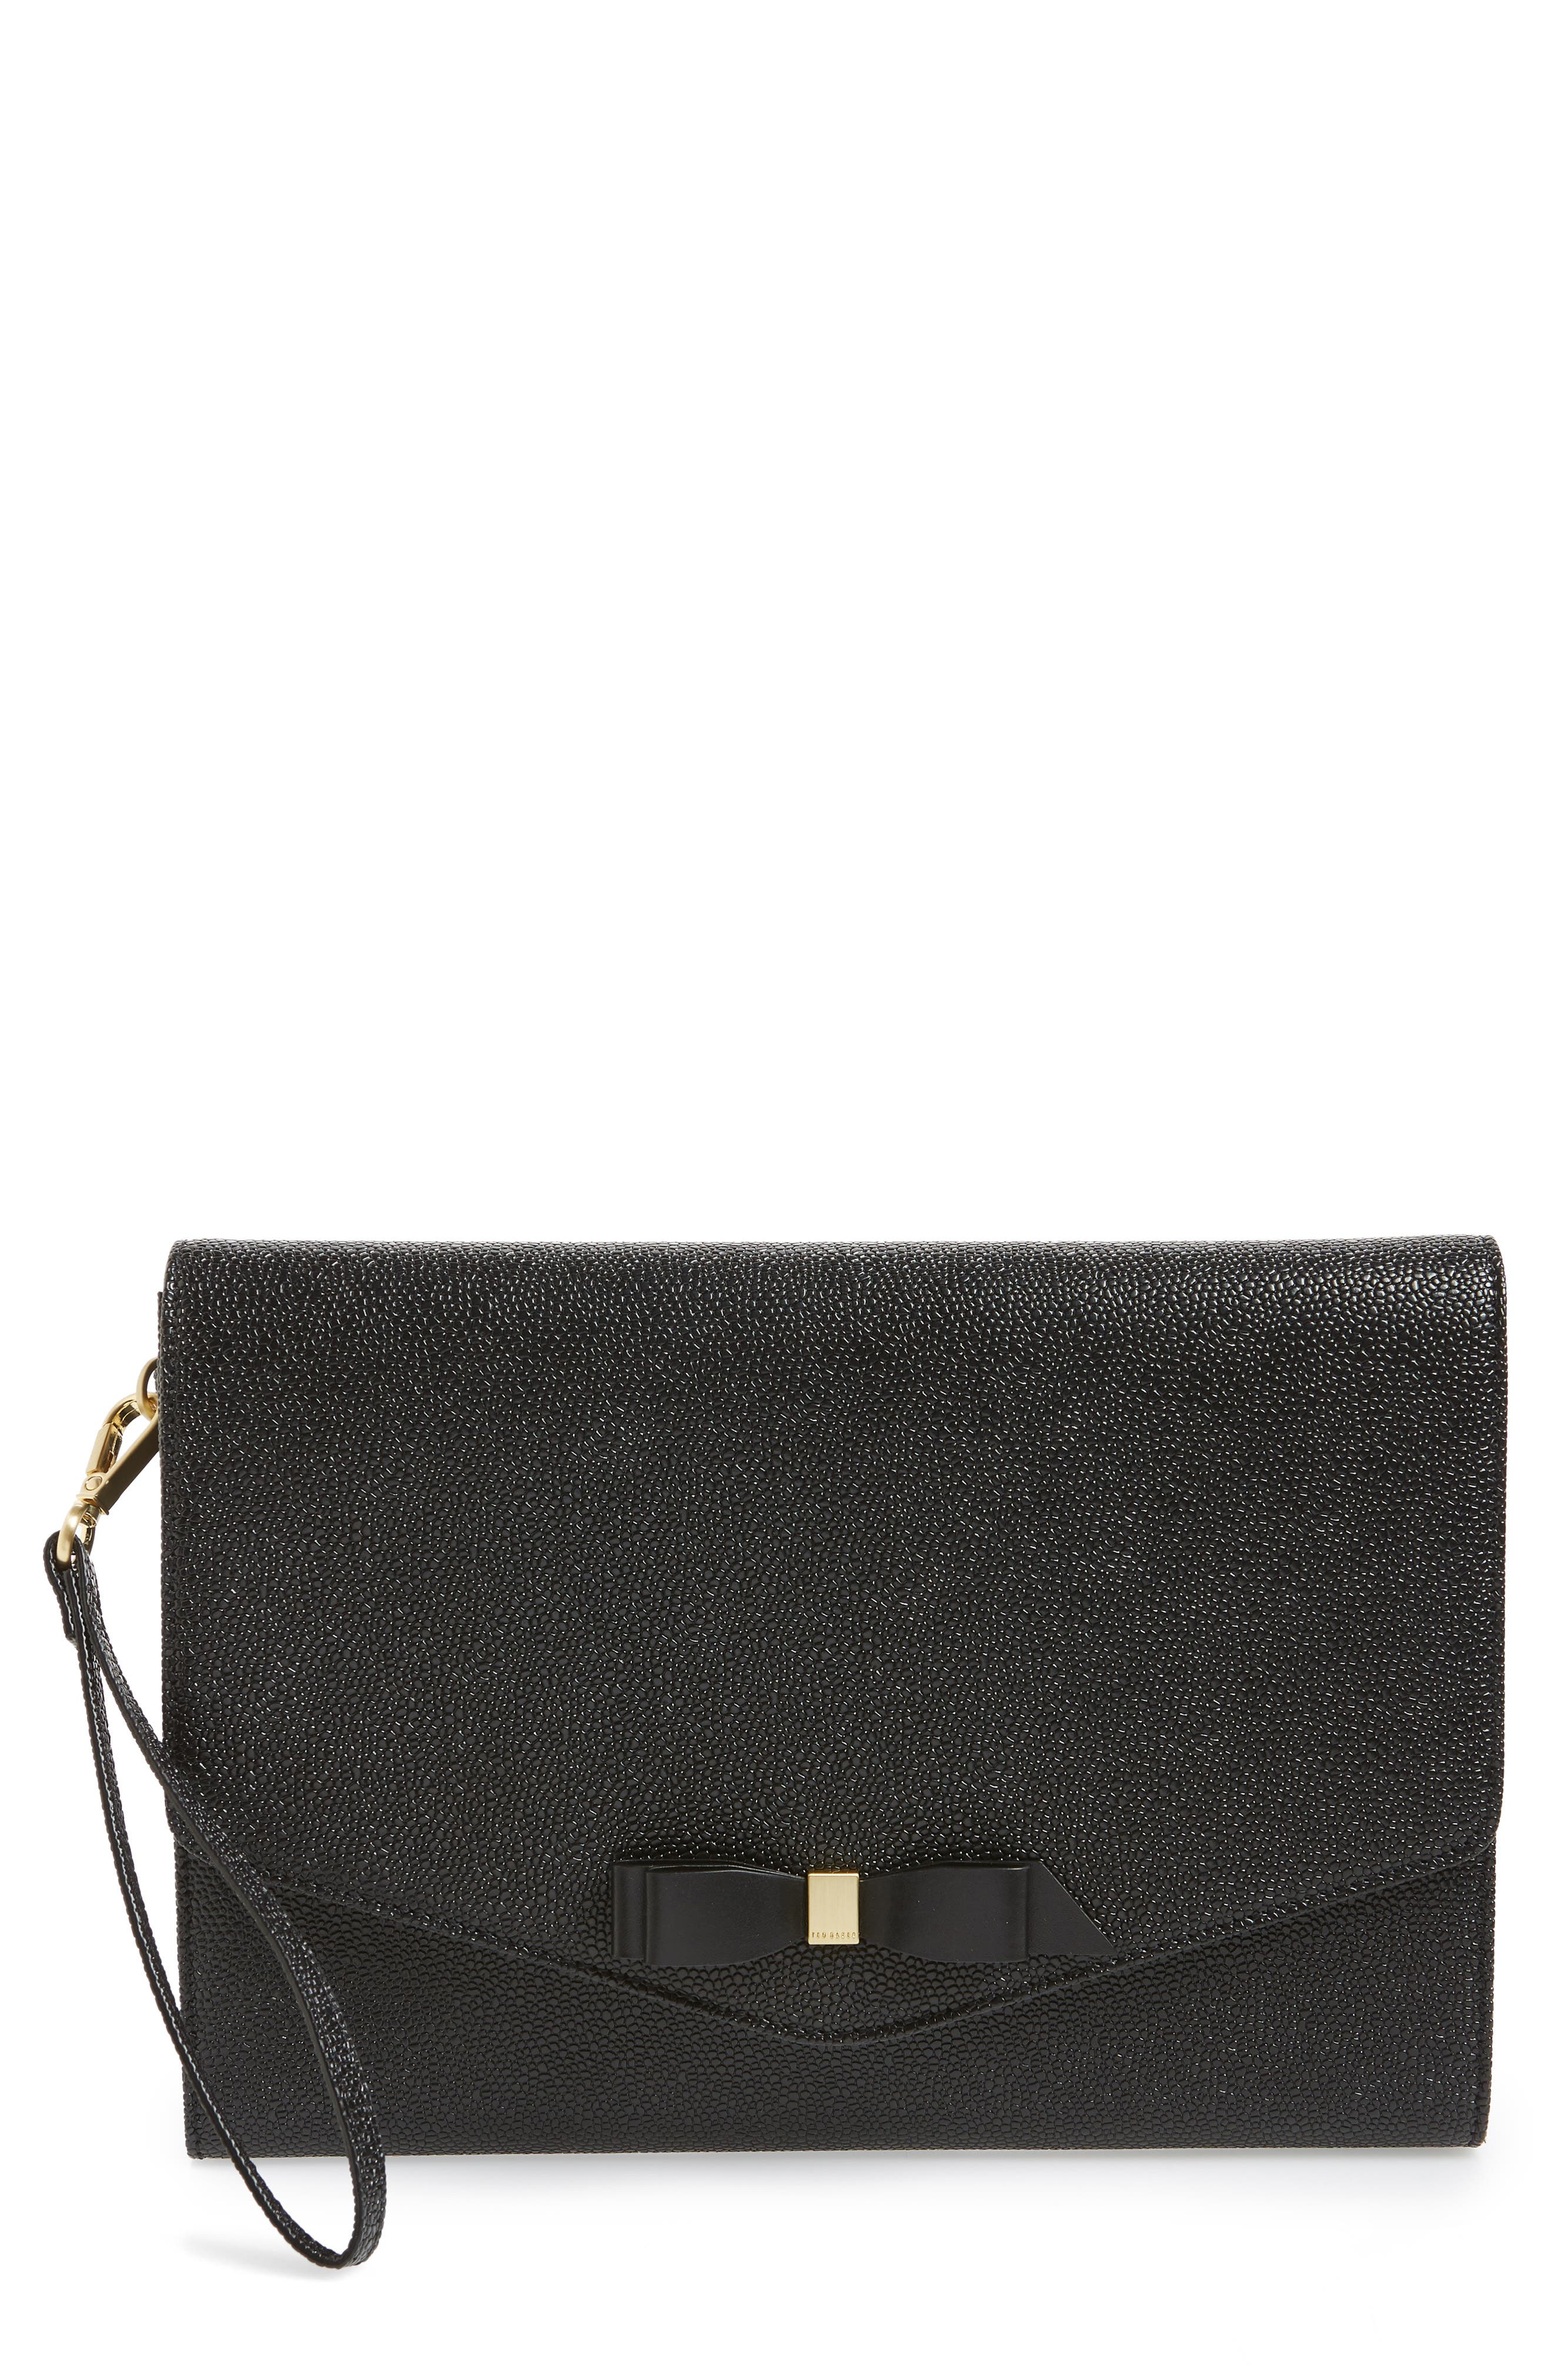 TED BAKER LONDON,                             Krystan Bow Leather Envelope Clutch,                             Main thumbnail 1, color,                             BLACK